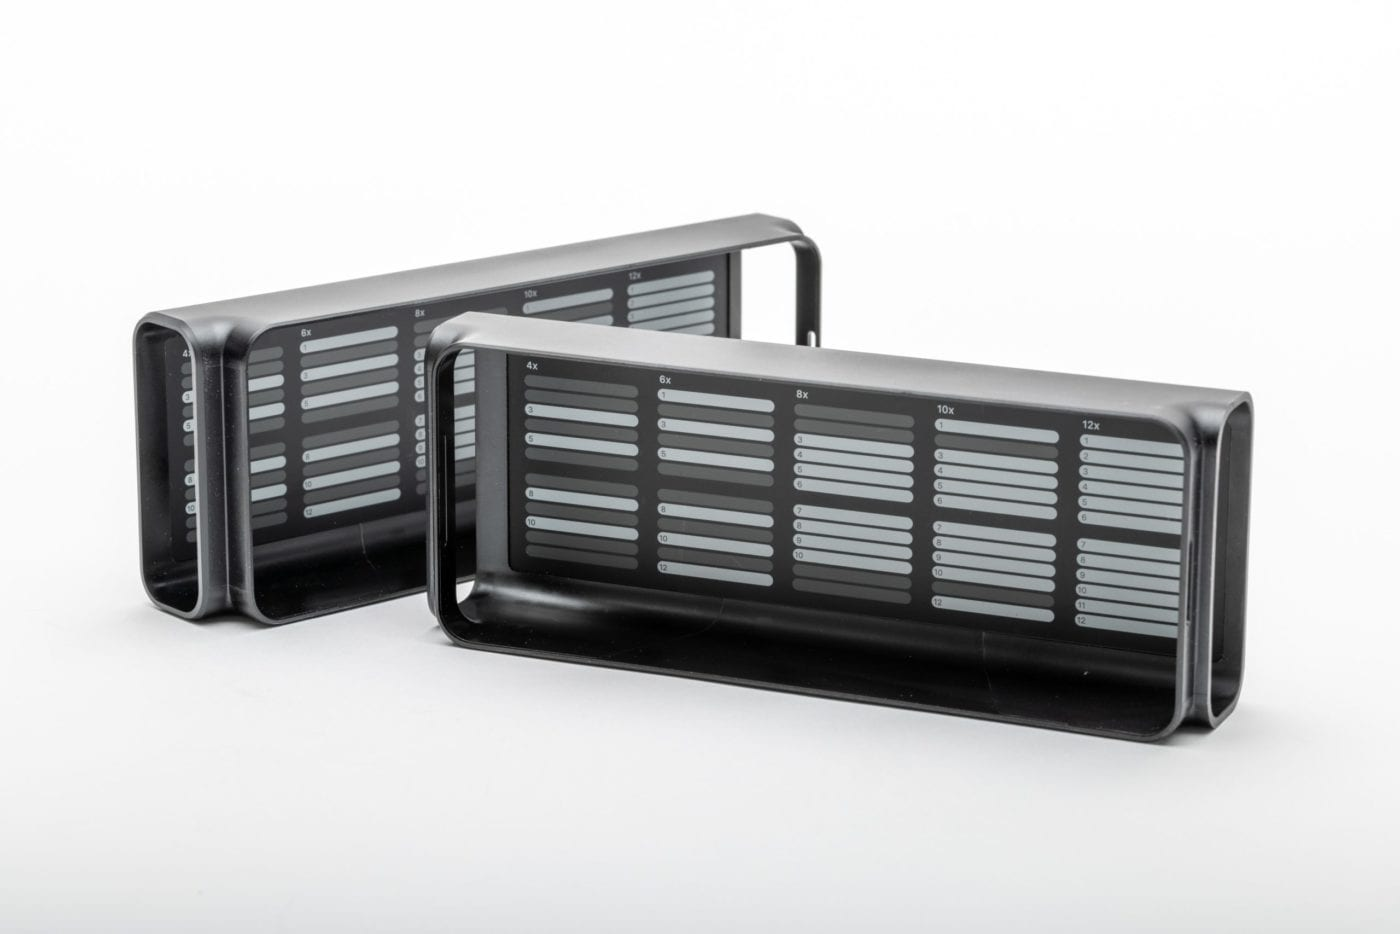 2019 Mac Pro – RAM covers, inside view of diagrams for various quantities of memory chips